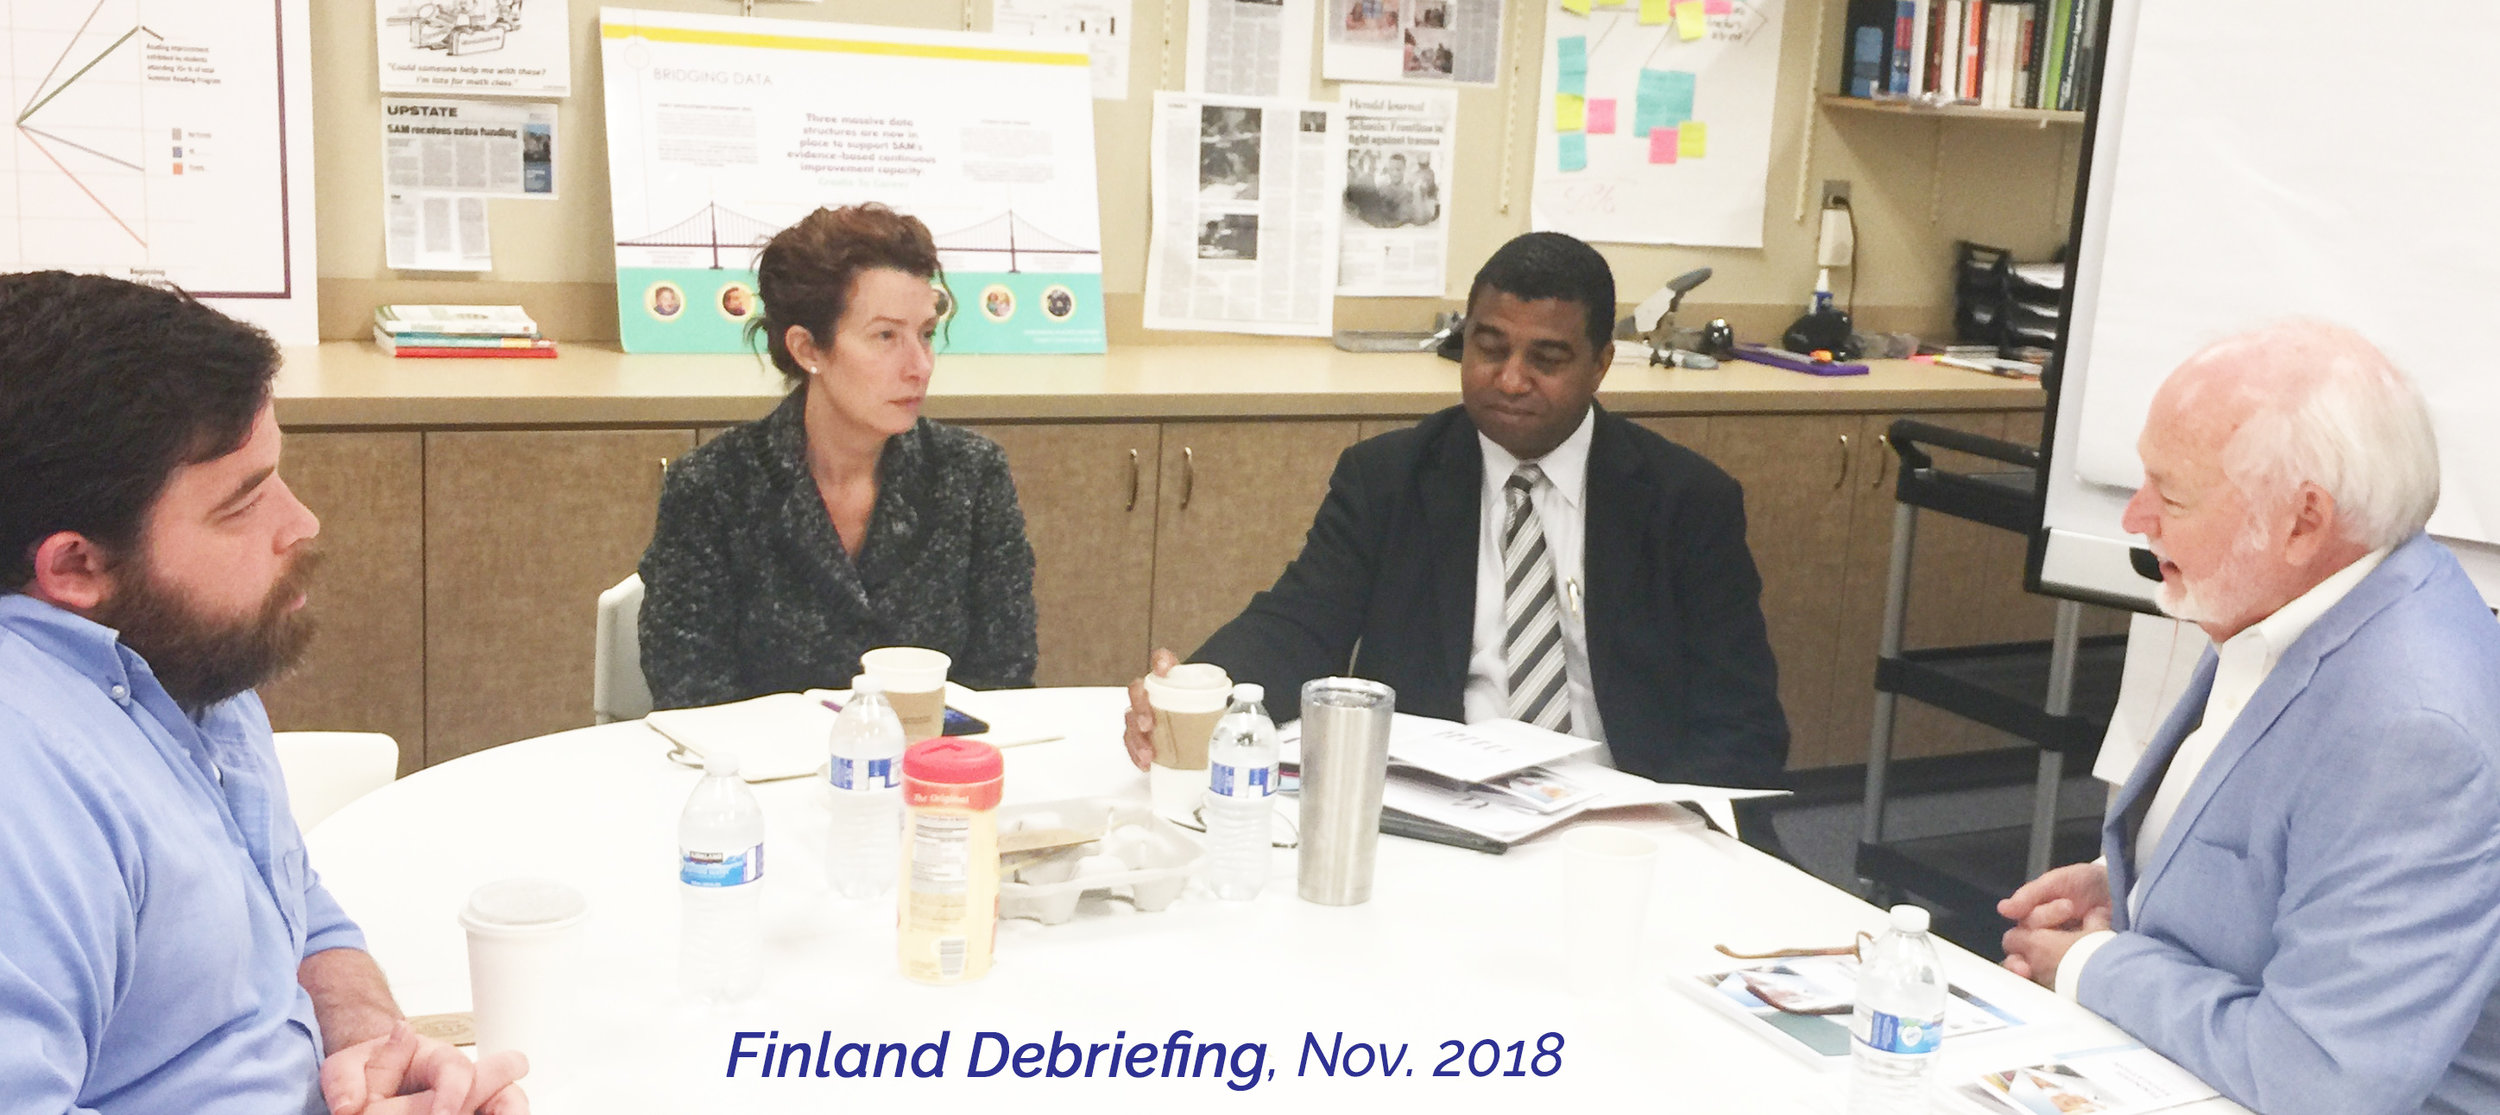 Spartanburg Educational leaders Drs. Laura Reynolds, Russell Booker, and John Stockwell provide insights to Spartanburg Herald Journal reporter Adam Orr (left) after they participated in a trip to explore the Finnish Educational System.